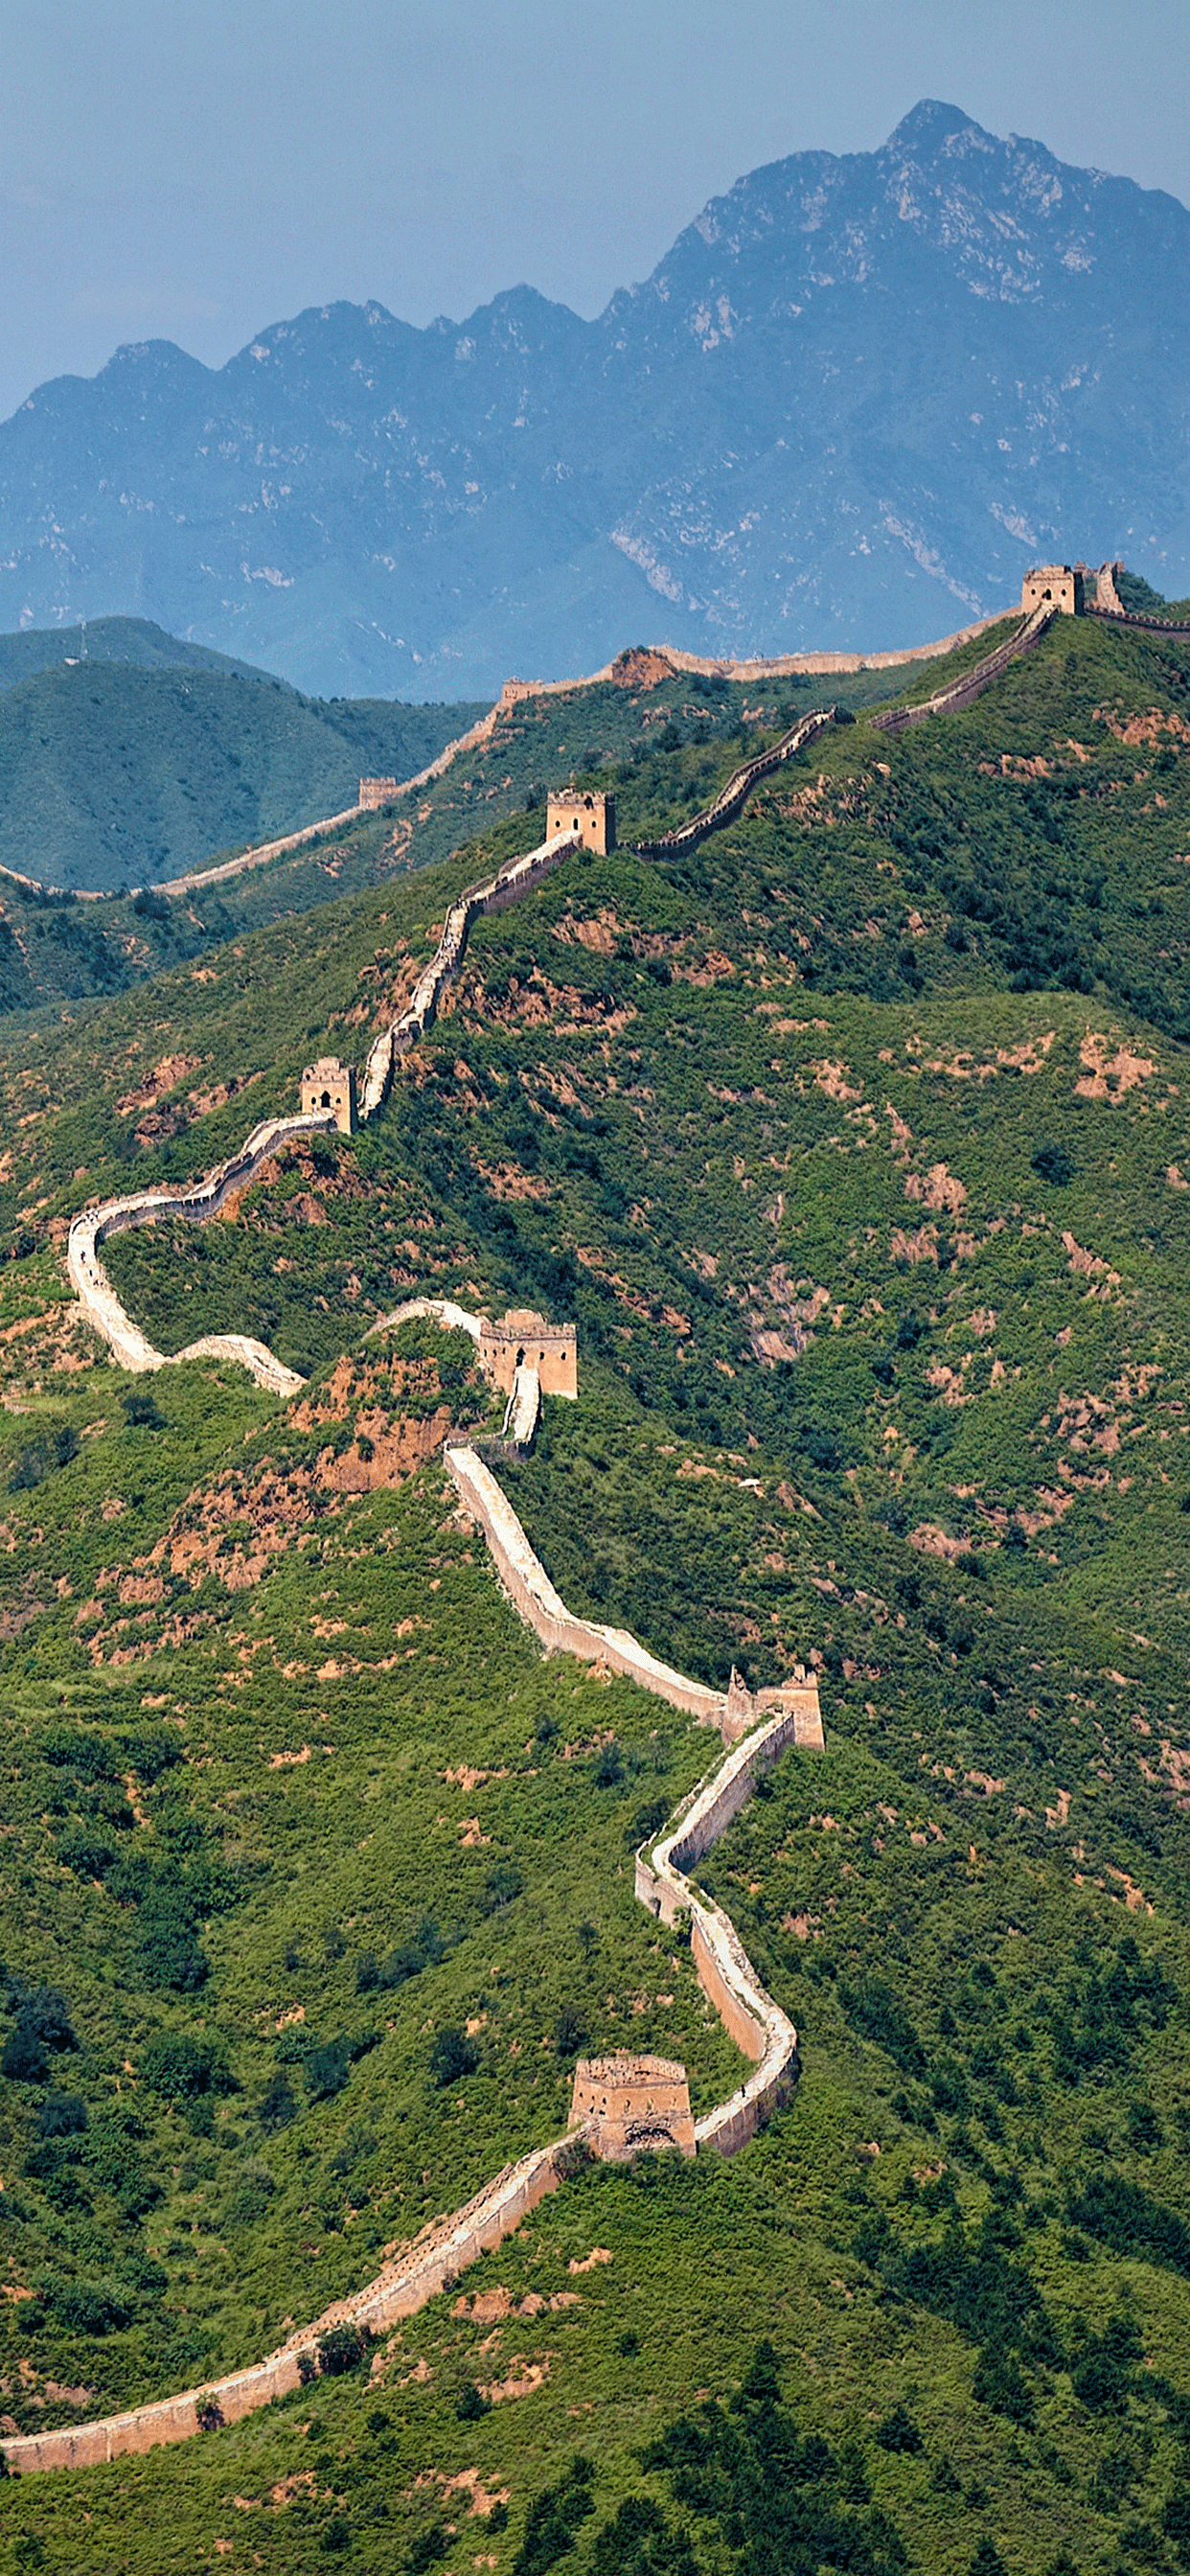 The Great Wall Of China Wallpaper For Iphone X 8 7 6